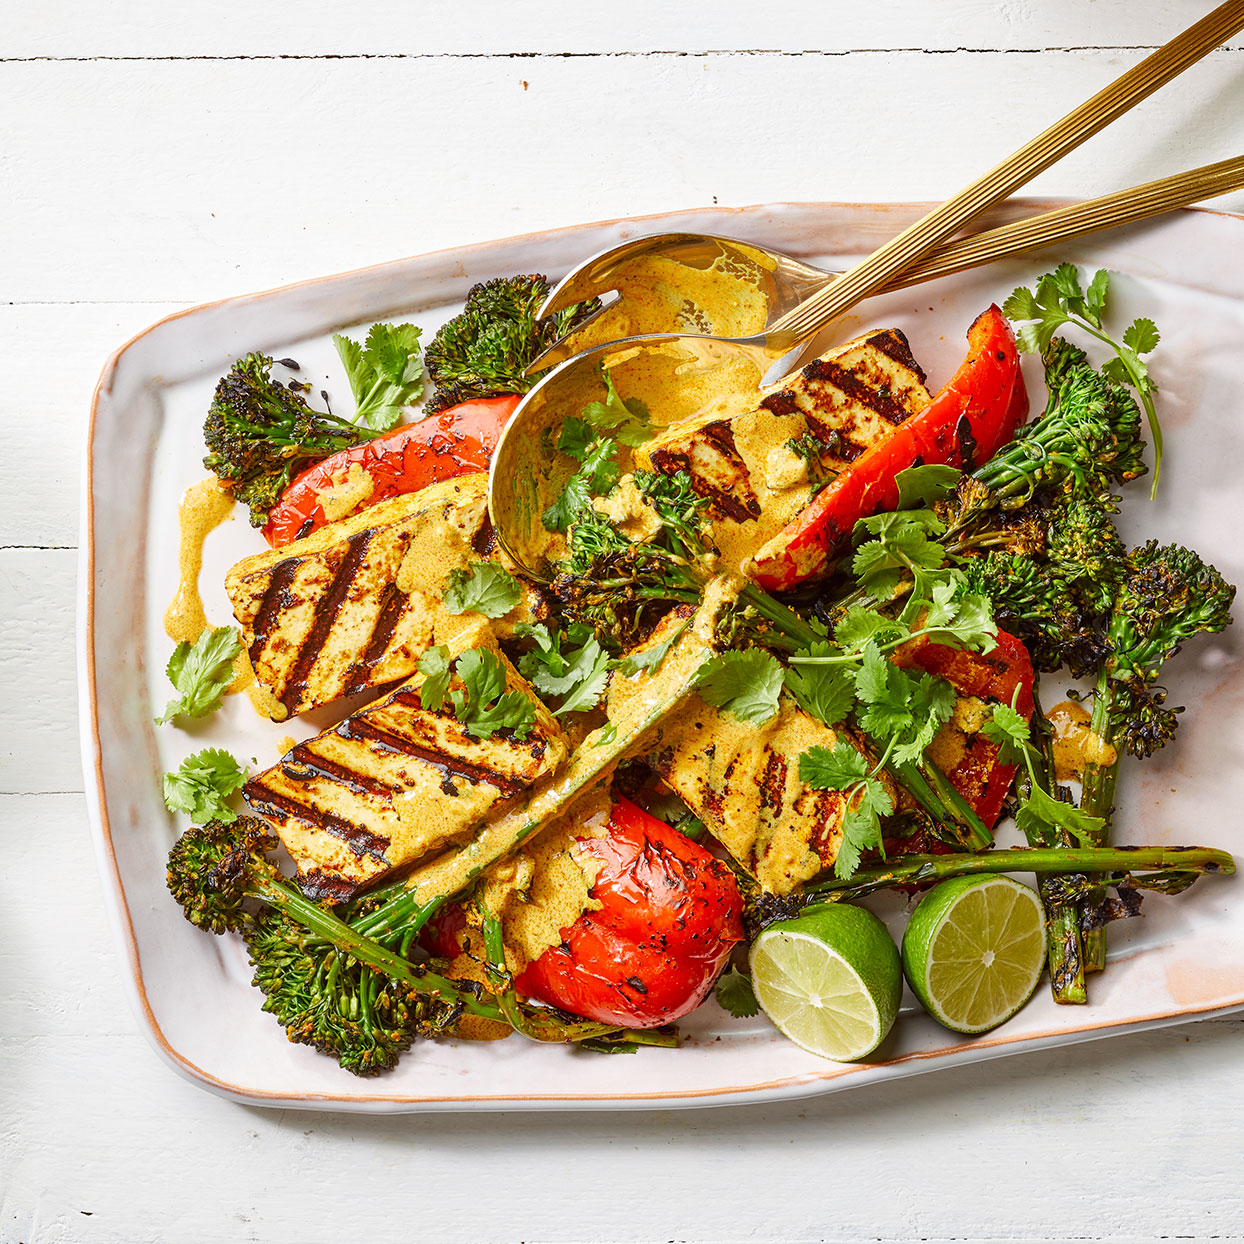 Spiced yogurt does two jobs here as both the marinade and the sauce for this grilled tofu recipe. Source: EatingWell Magazine, May 2020